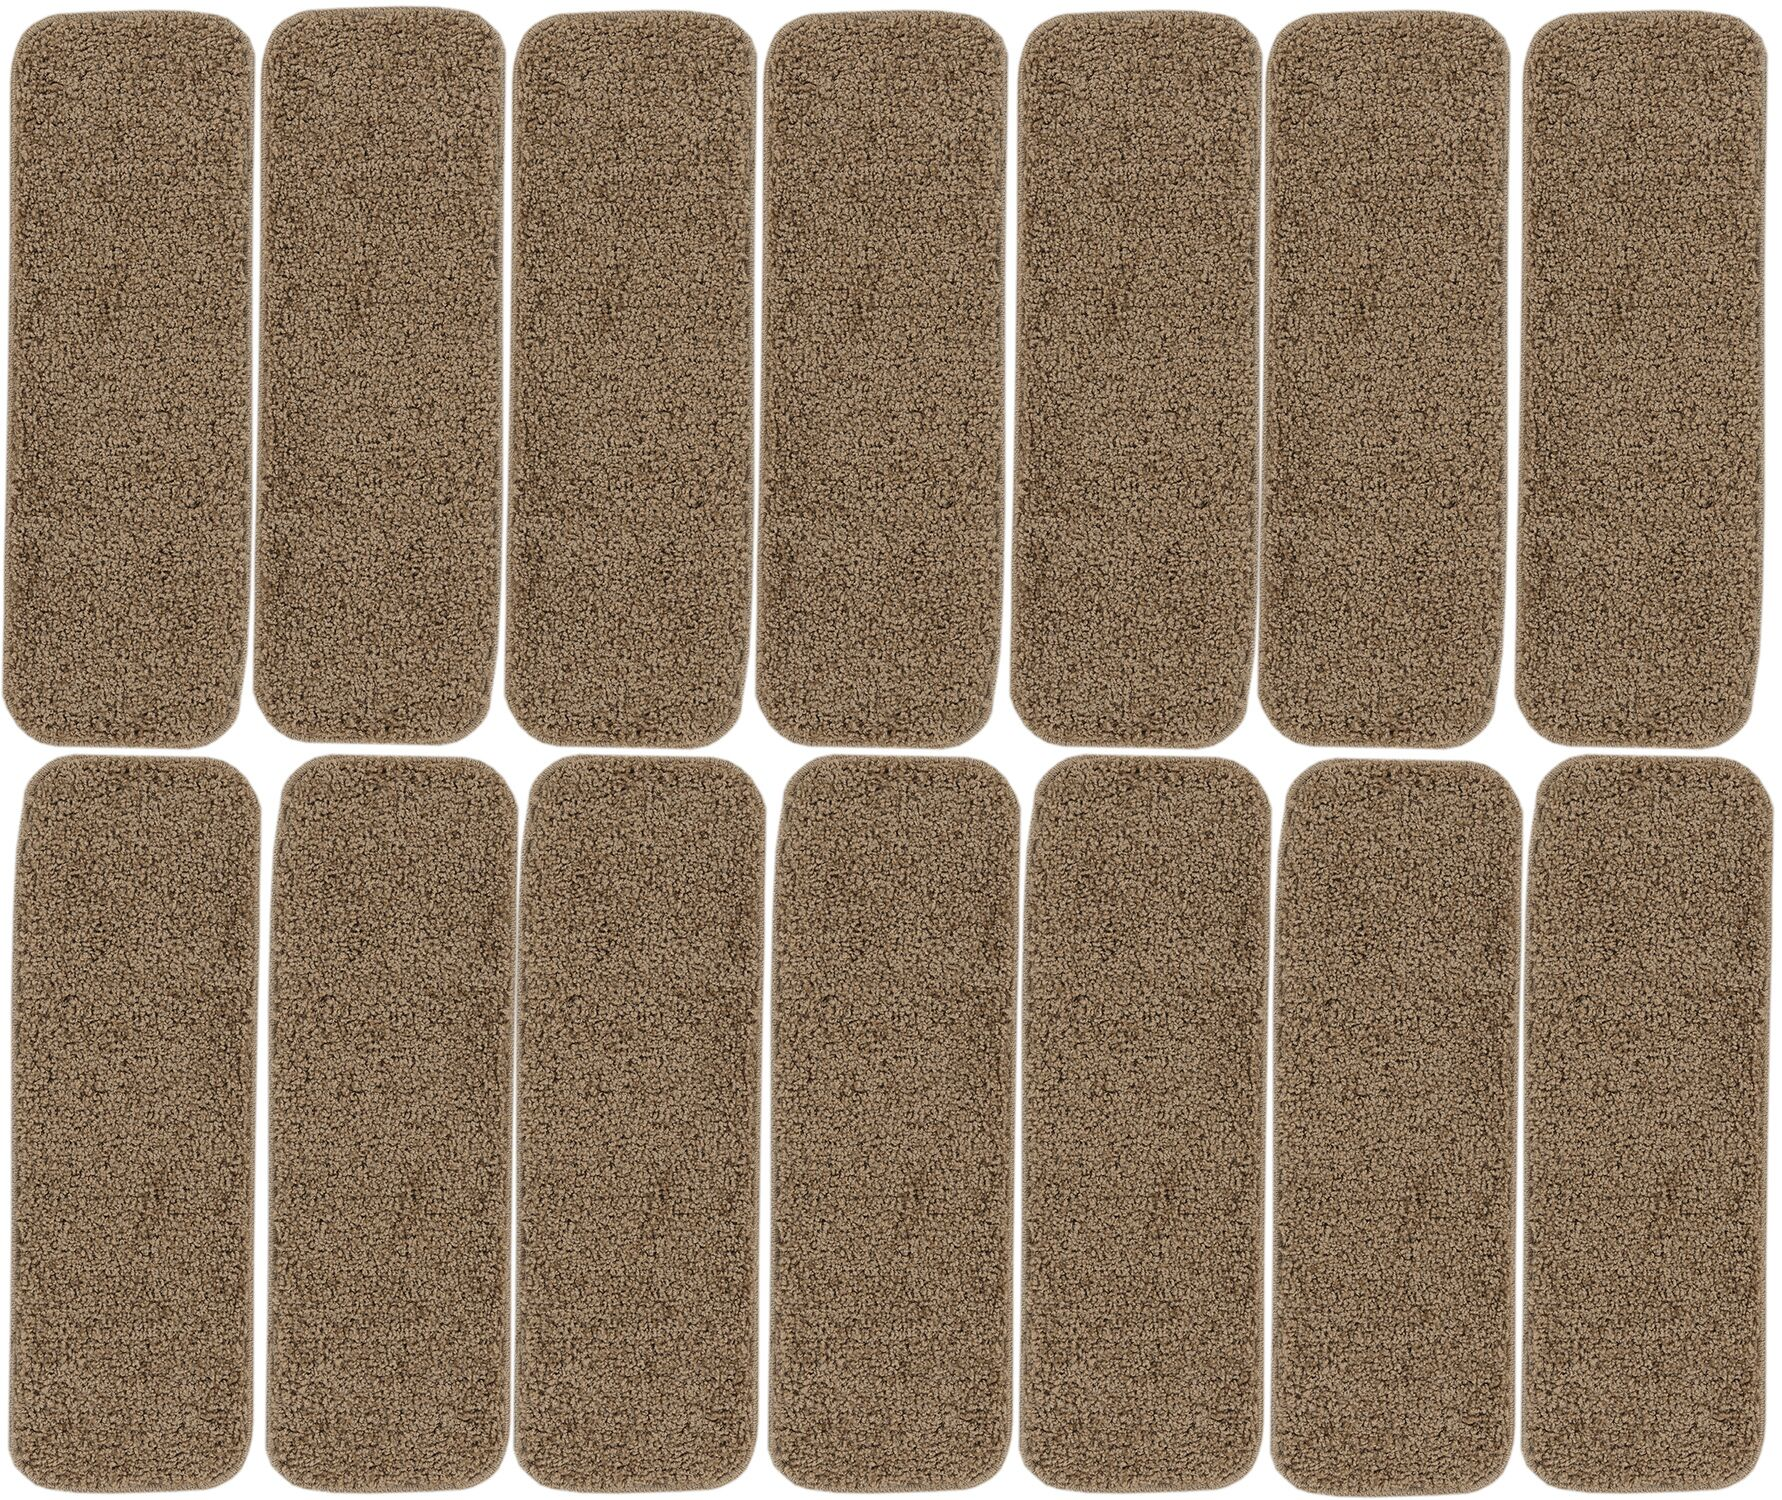 Luxury Camel Stair Treads Quantity: 14 Pack